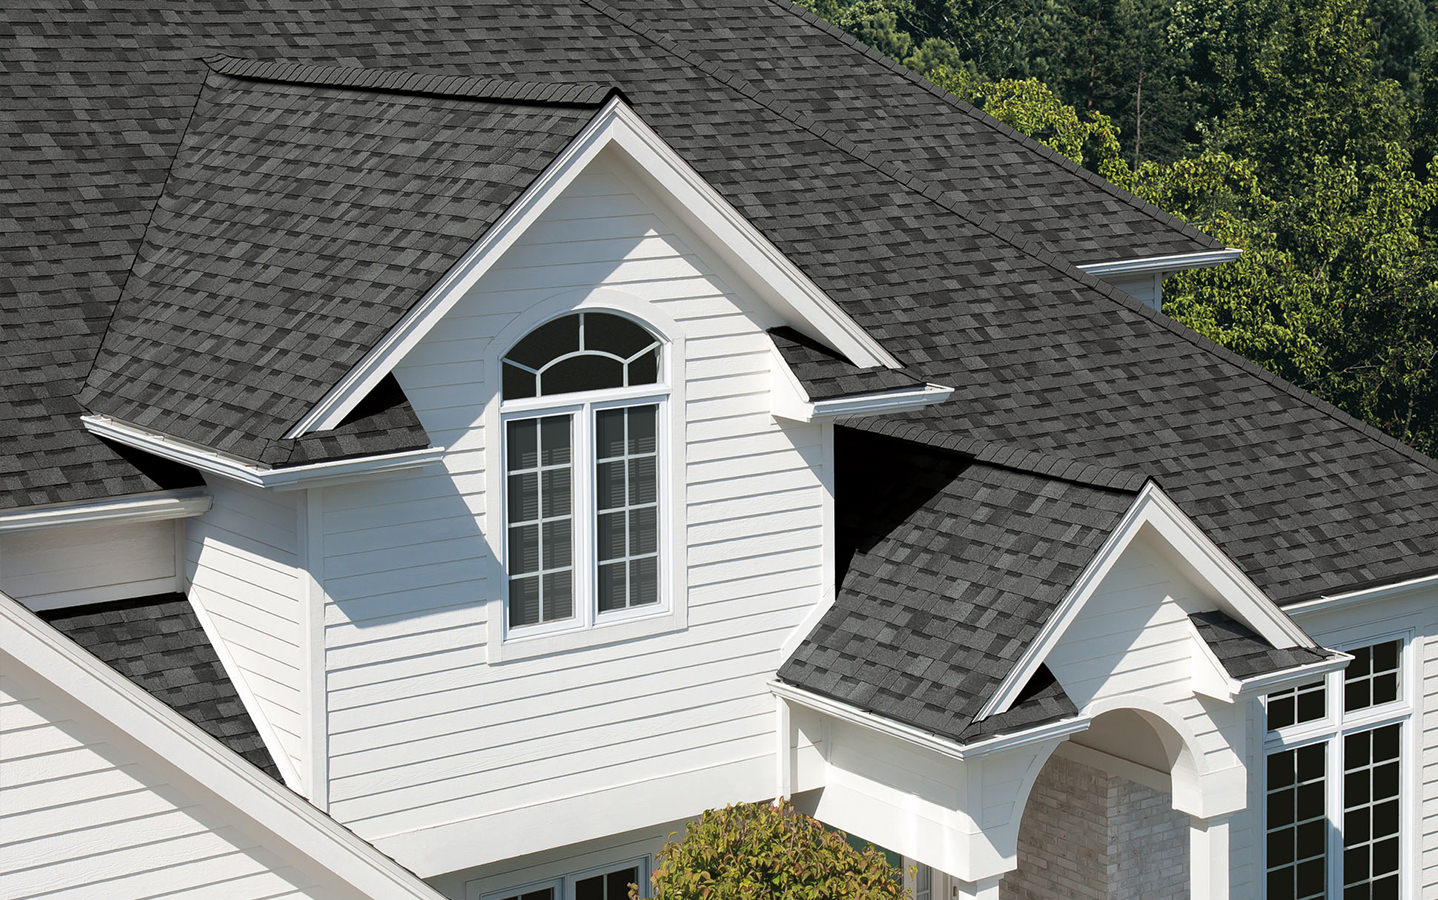 Owens Corning Dimensional Shingle Roof